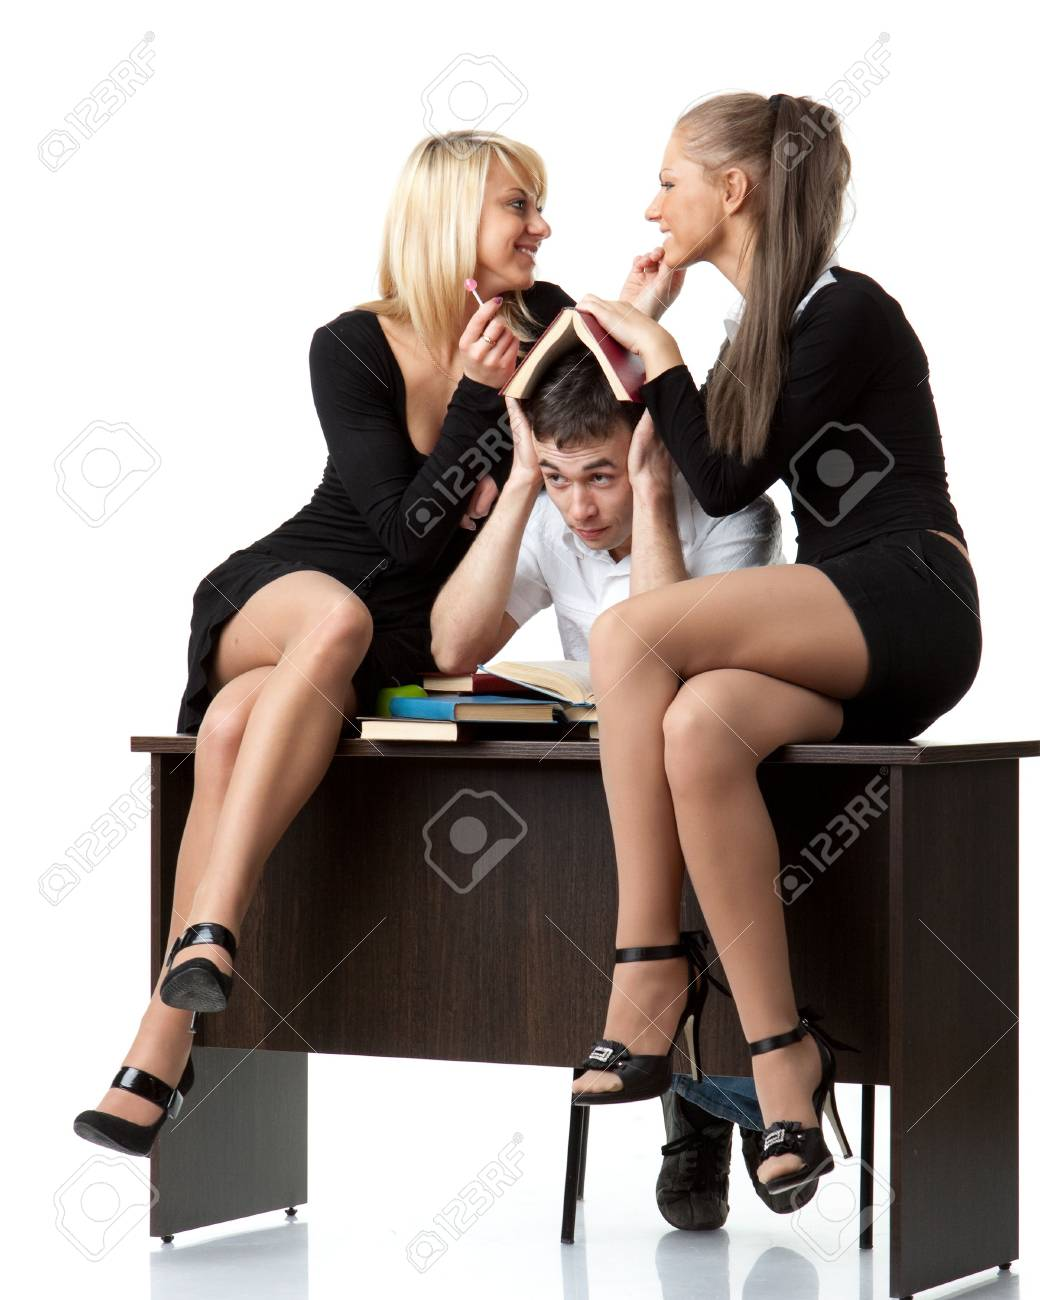 Students prepare for examination on a white background Stock Photo - 6624851